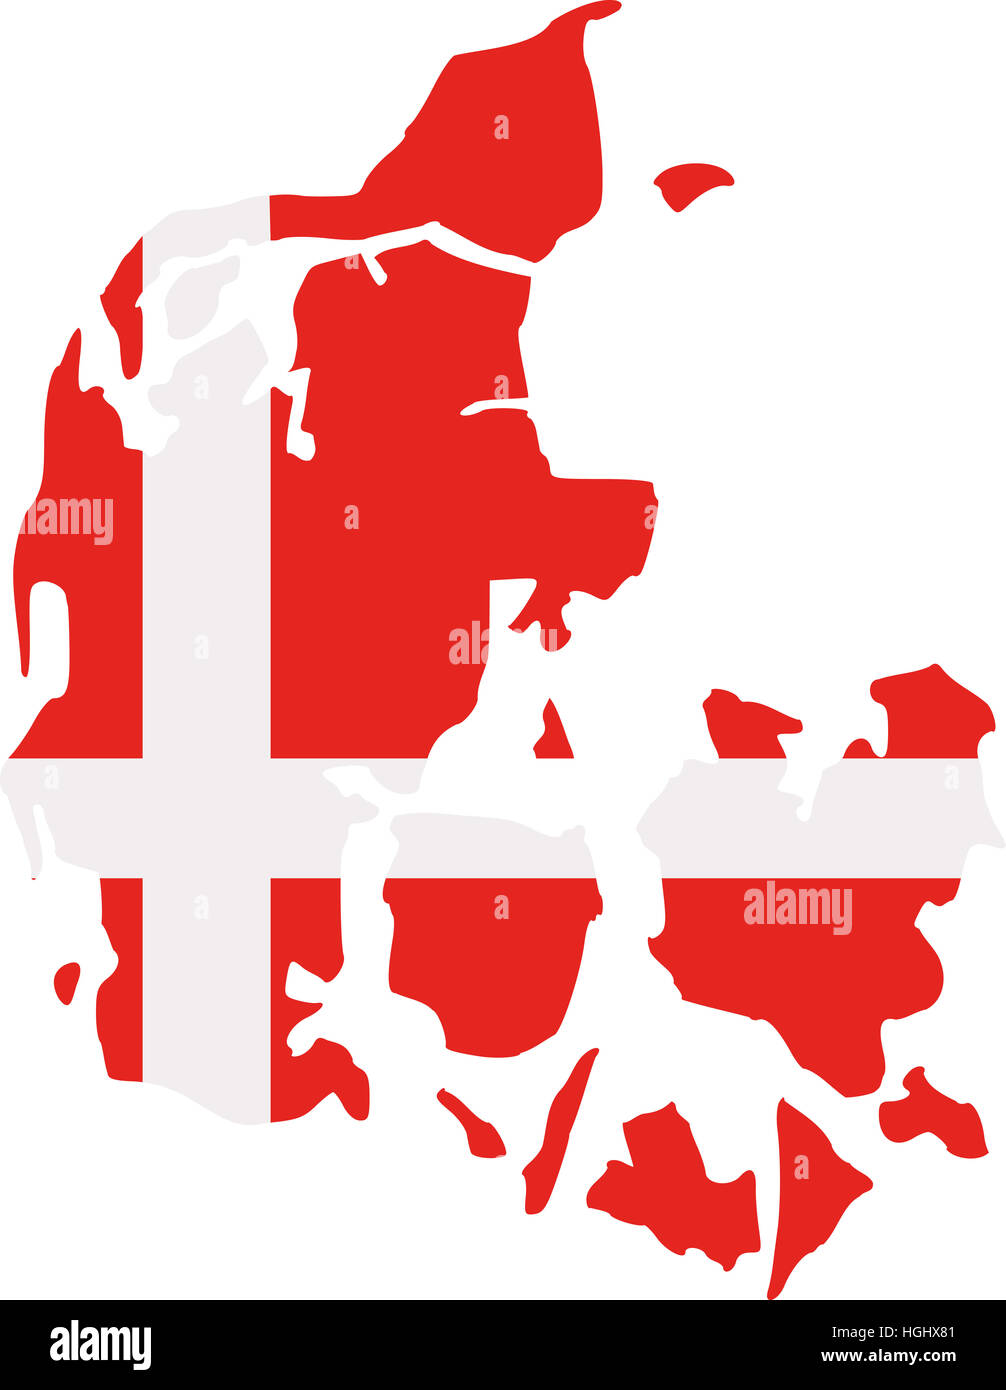 Denmark map with flag - Stock Image